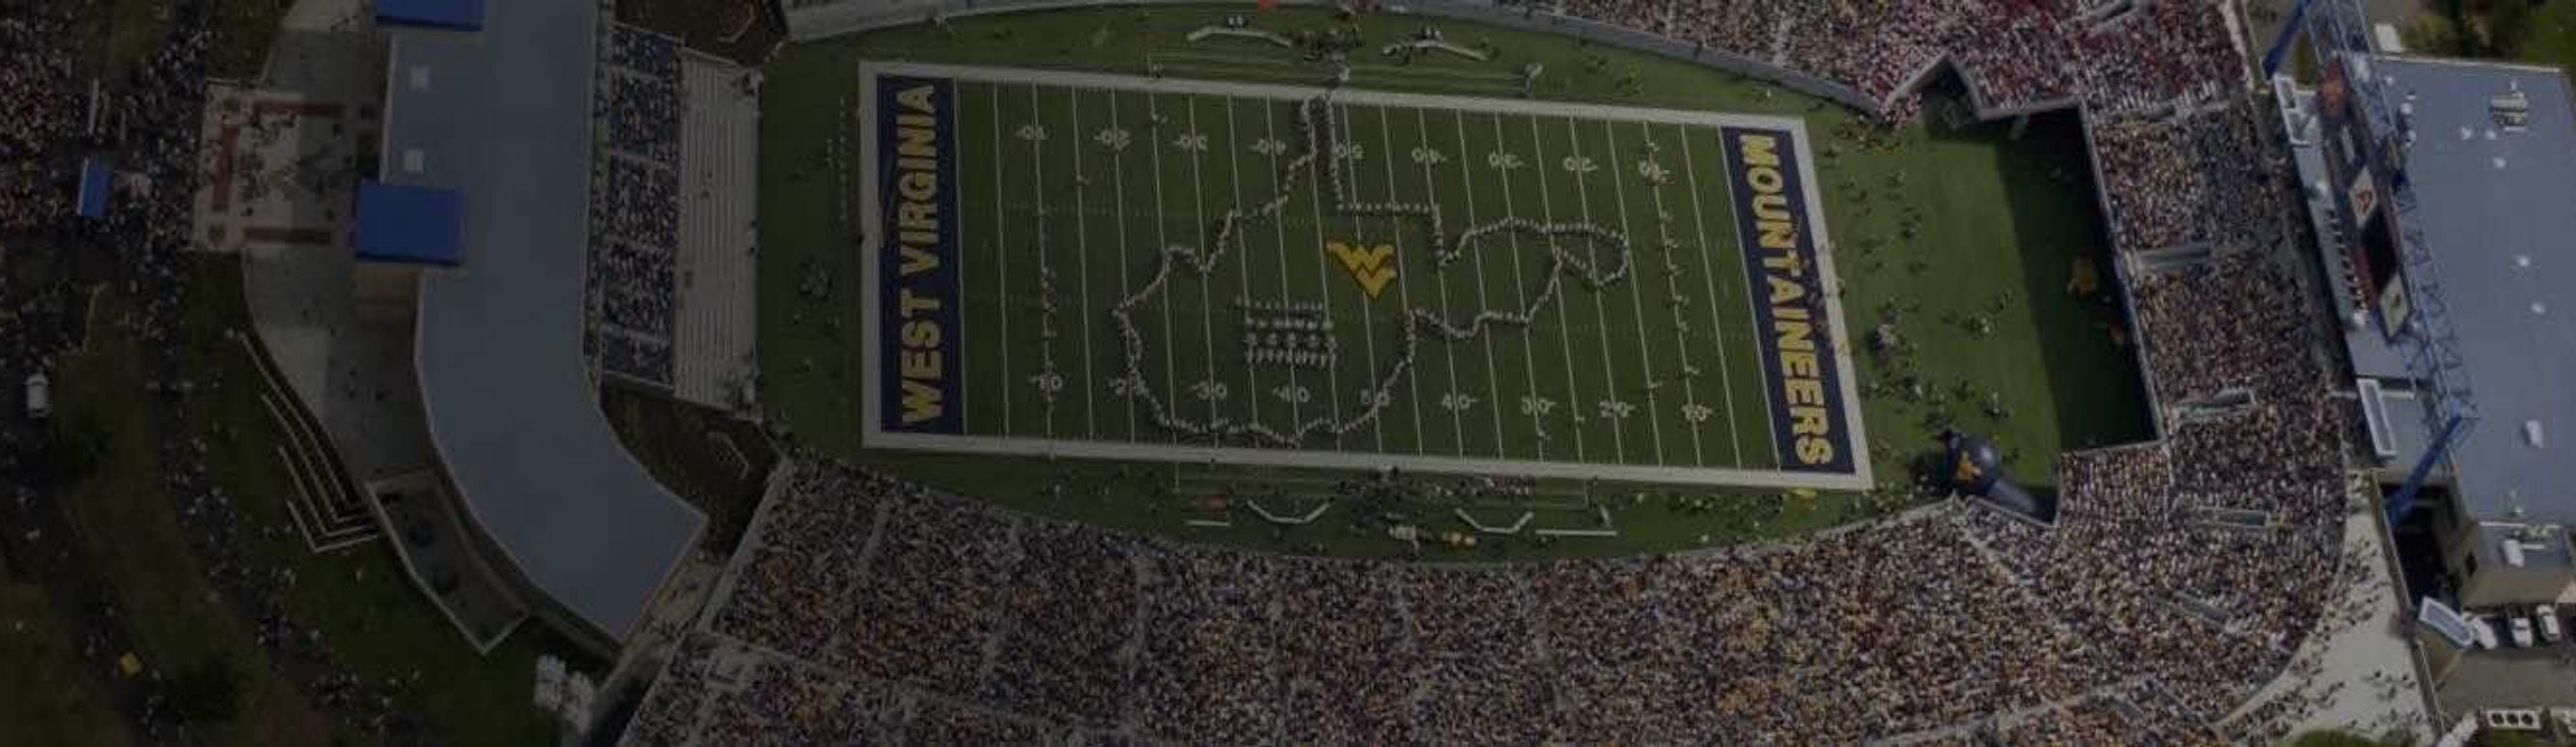 A packed Mountaineer Field on gameday in Morgantown, West Virginia